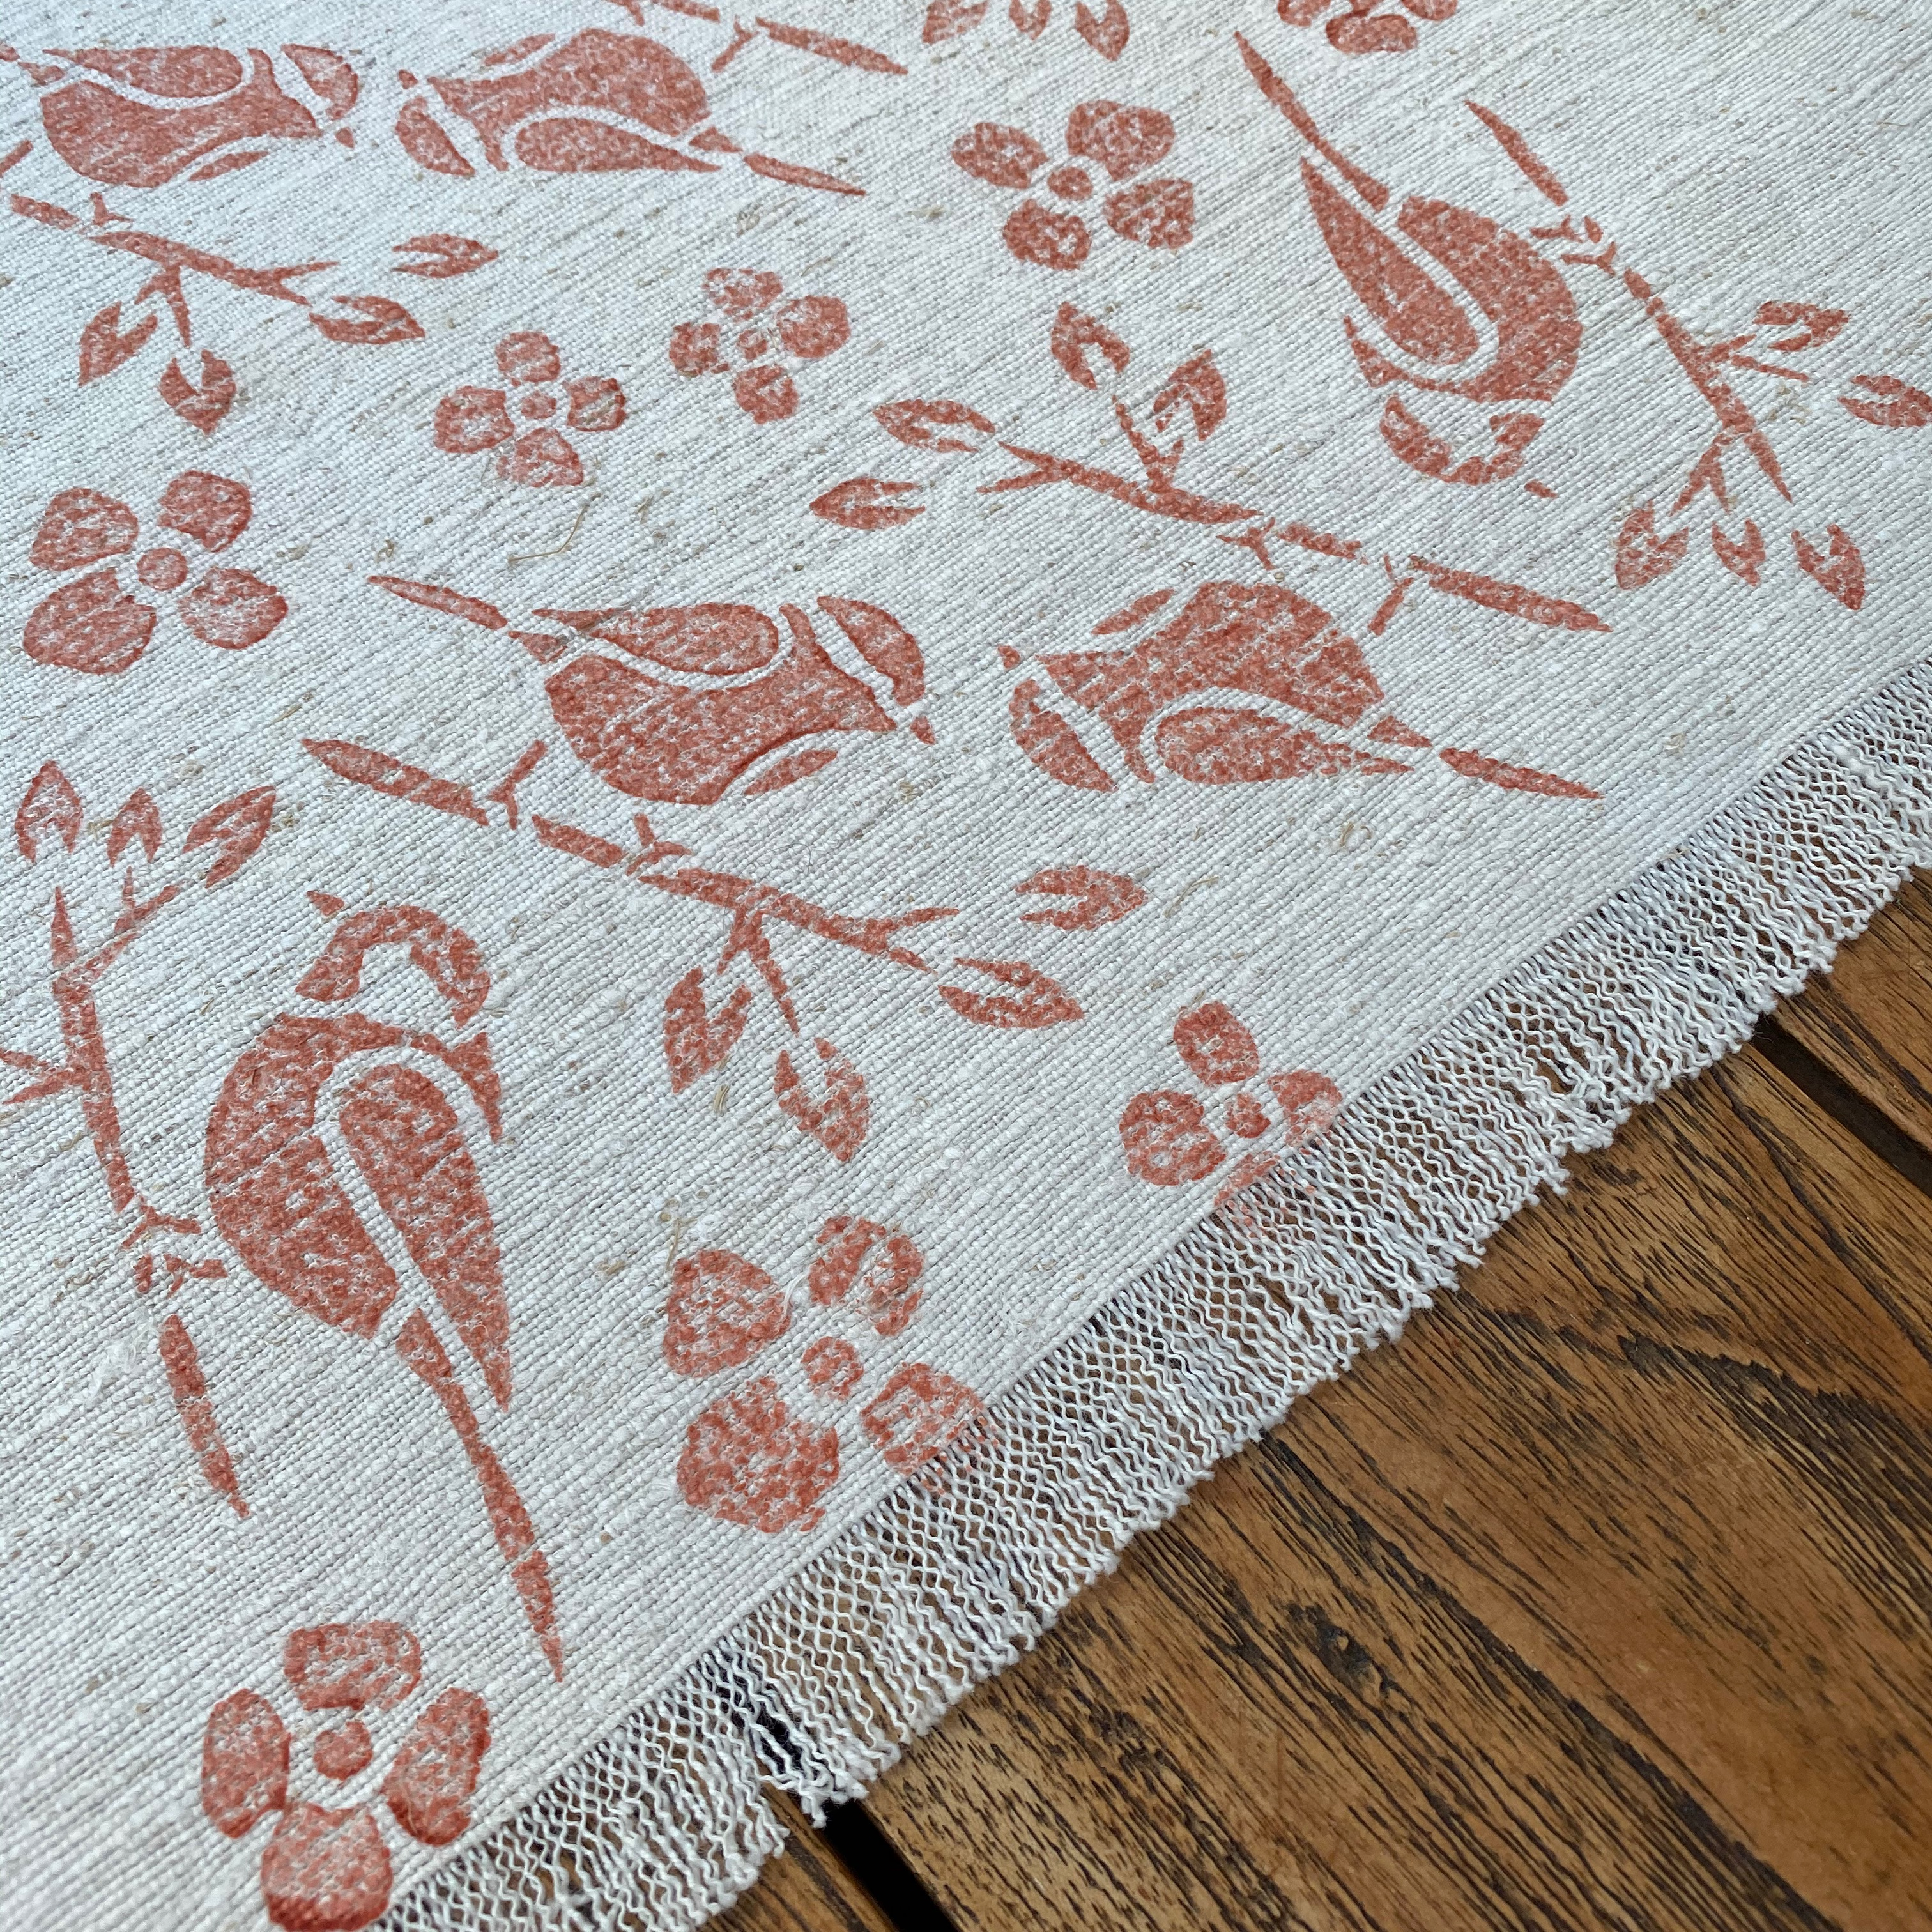 Hand Block Printed Table Runner in Burnt Orange